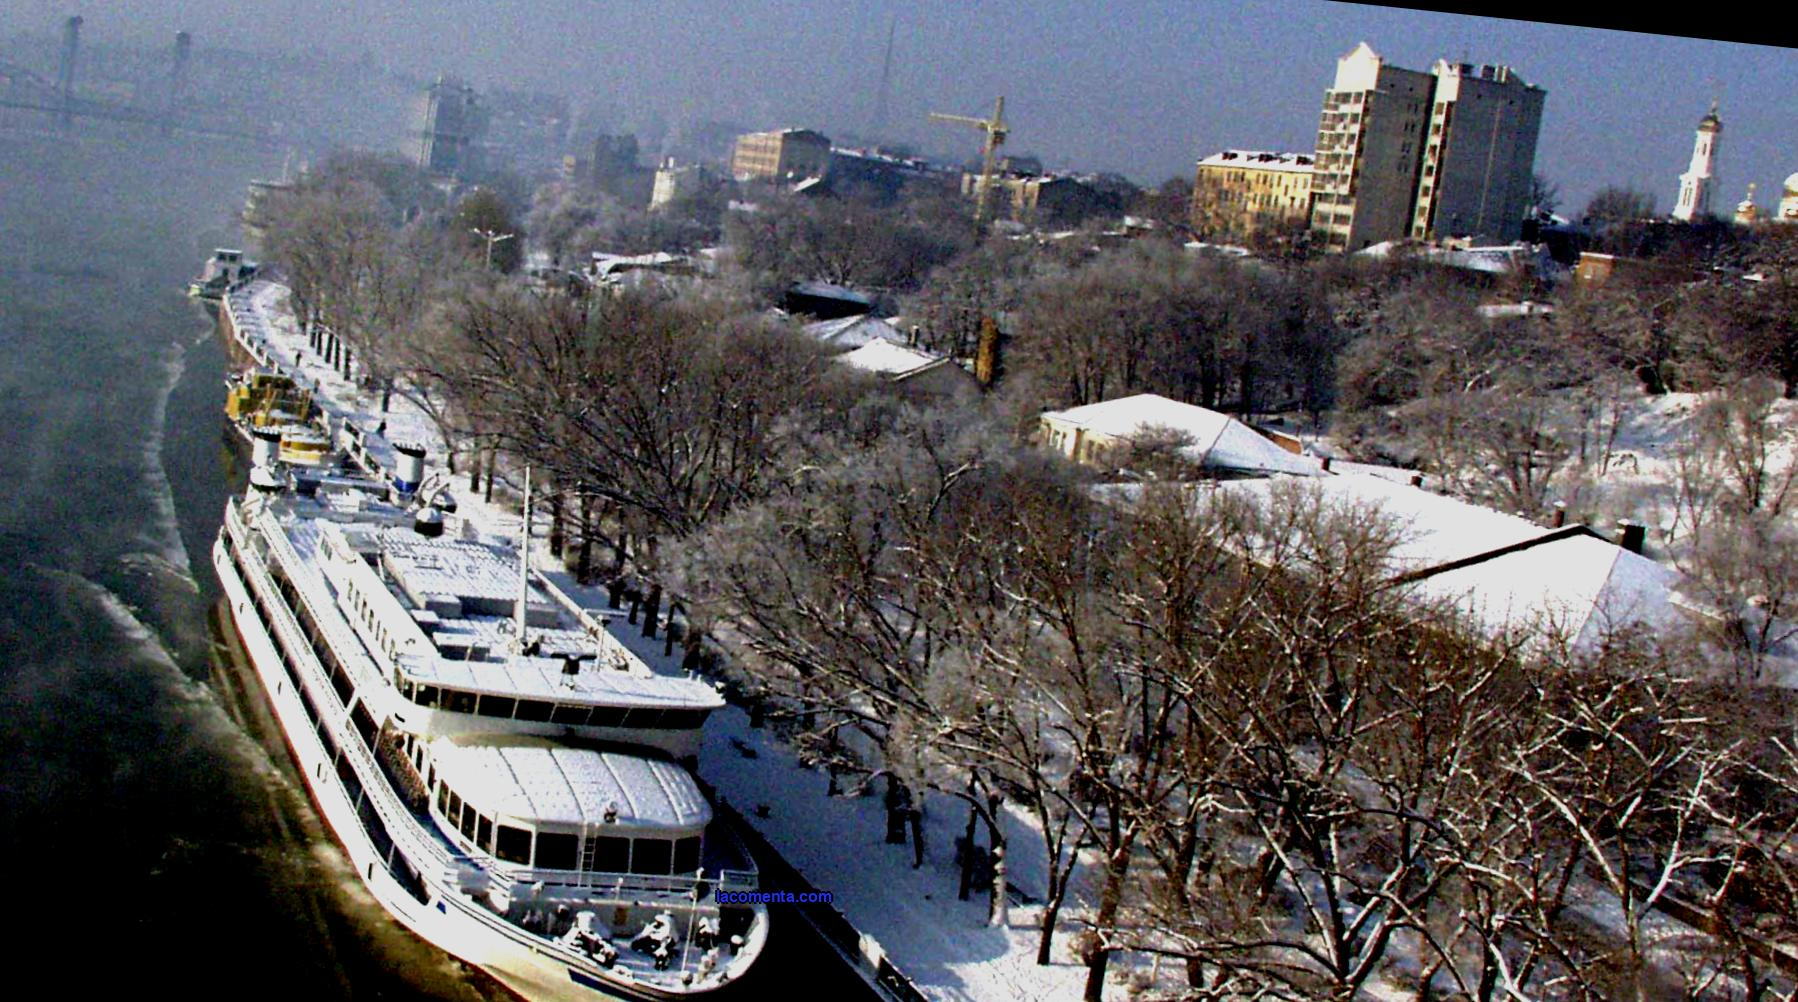 Rest in Rostov-on-Don in winter 2020-2021: where to go and what to see